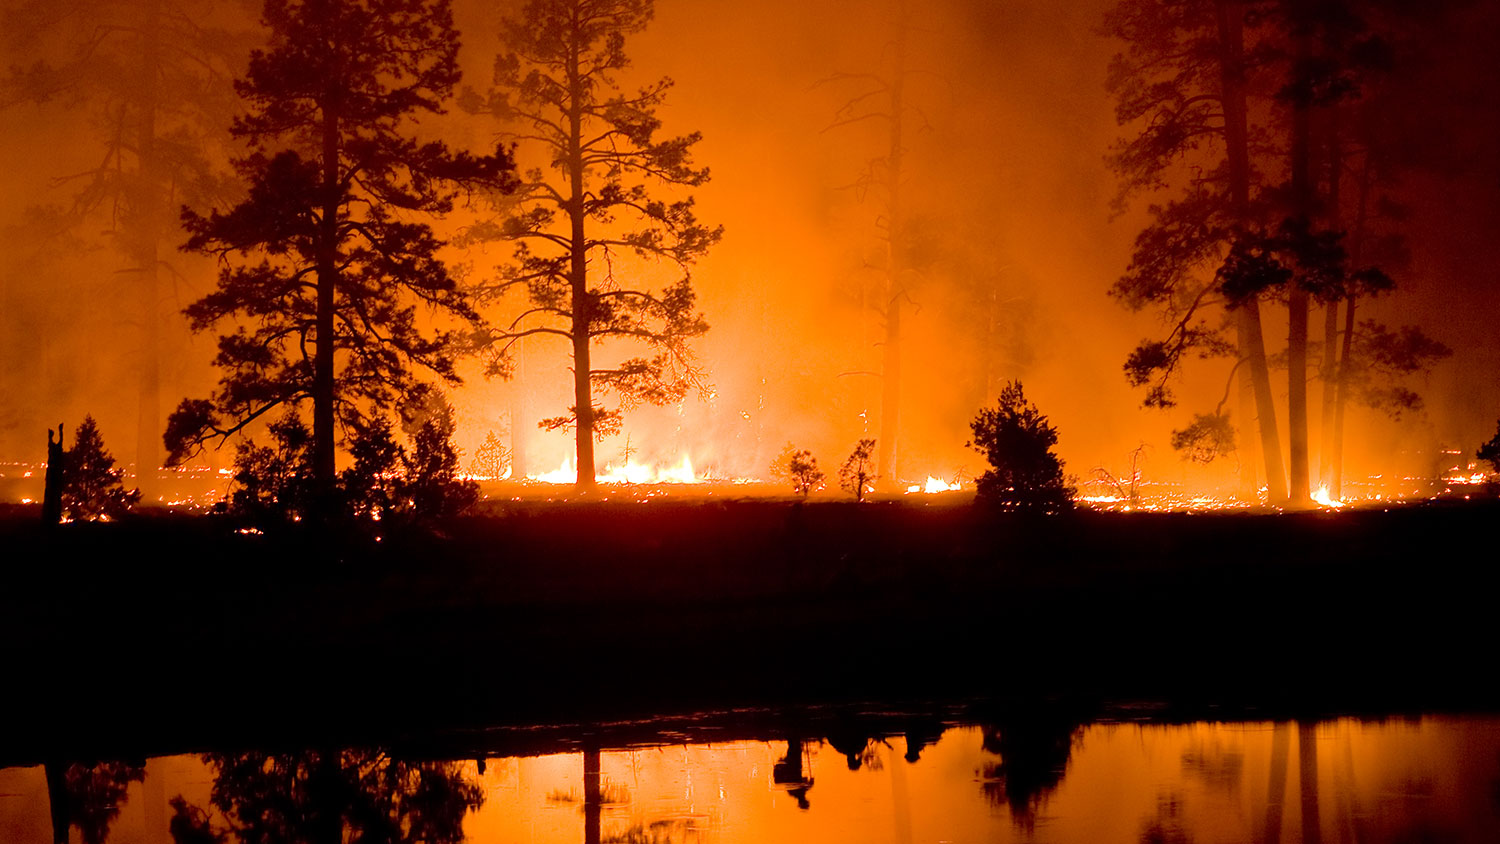 Learn to manage the factors that contribute to wildfires